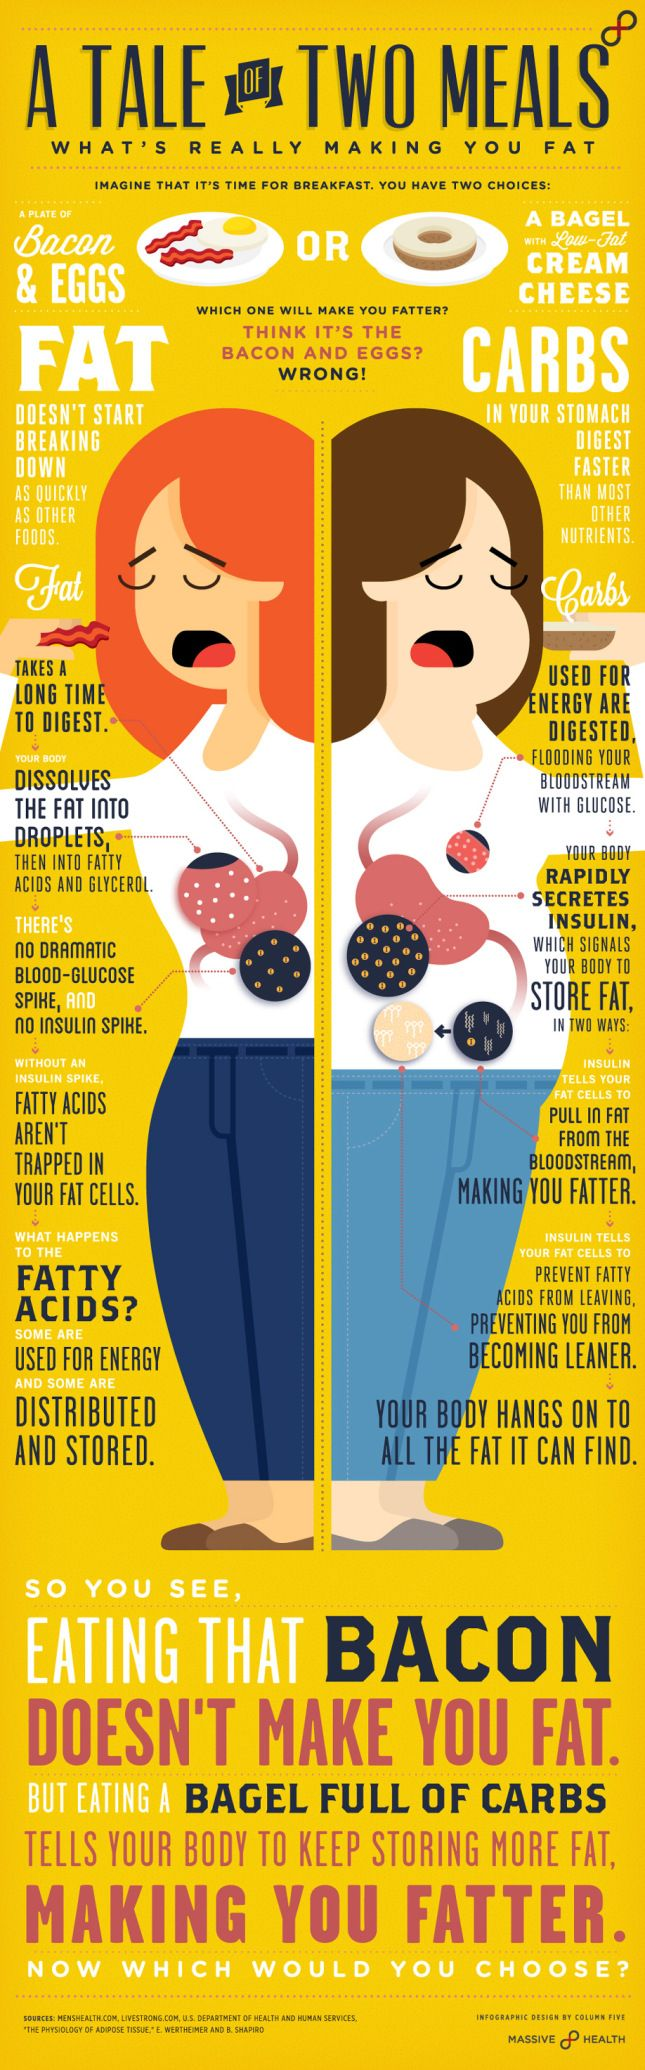 Death By Carbs « A simplistic explanation of how it is that fat does not make you fat.